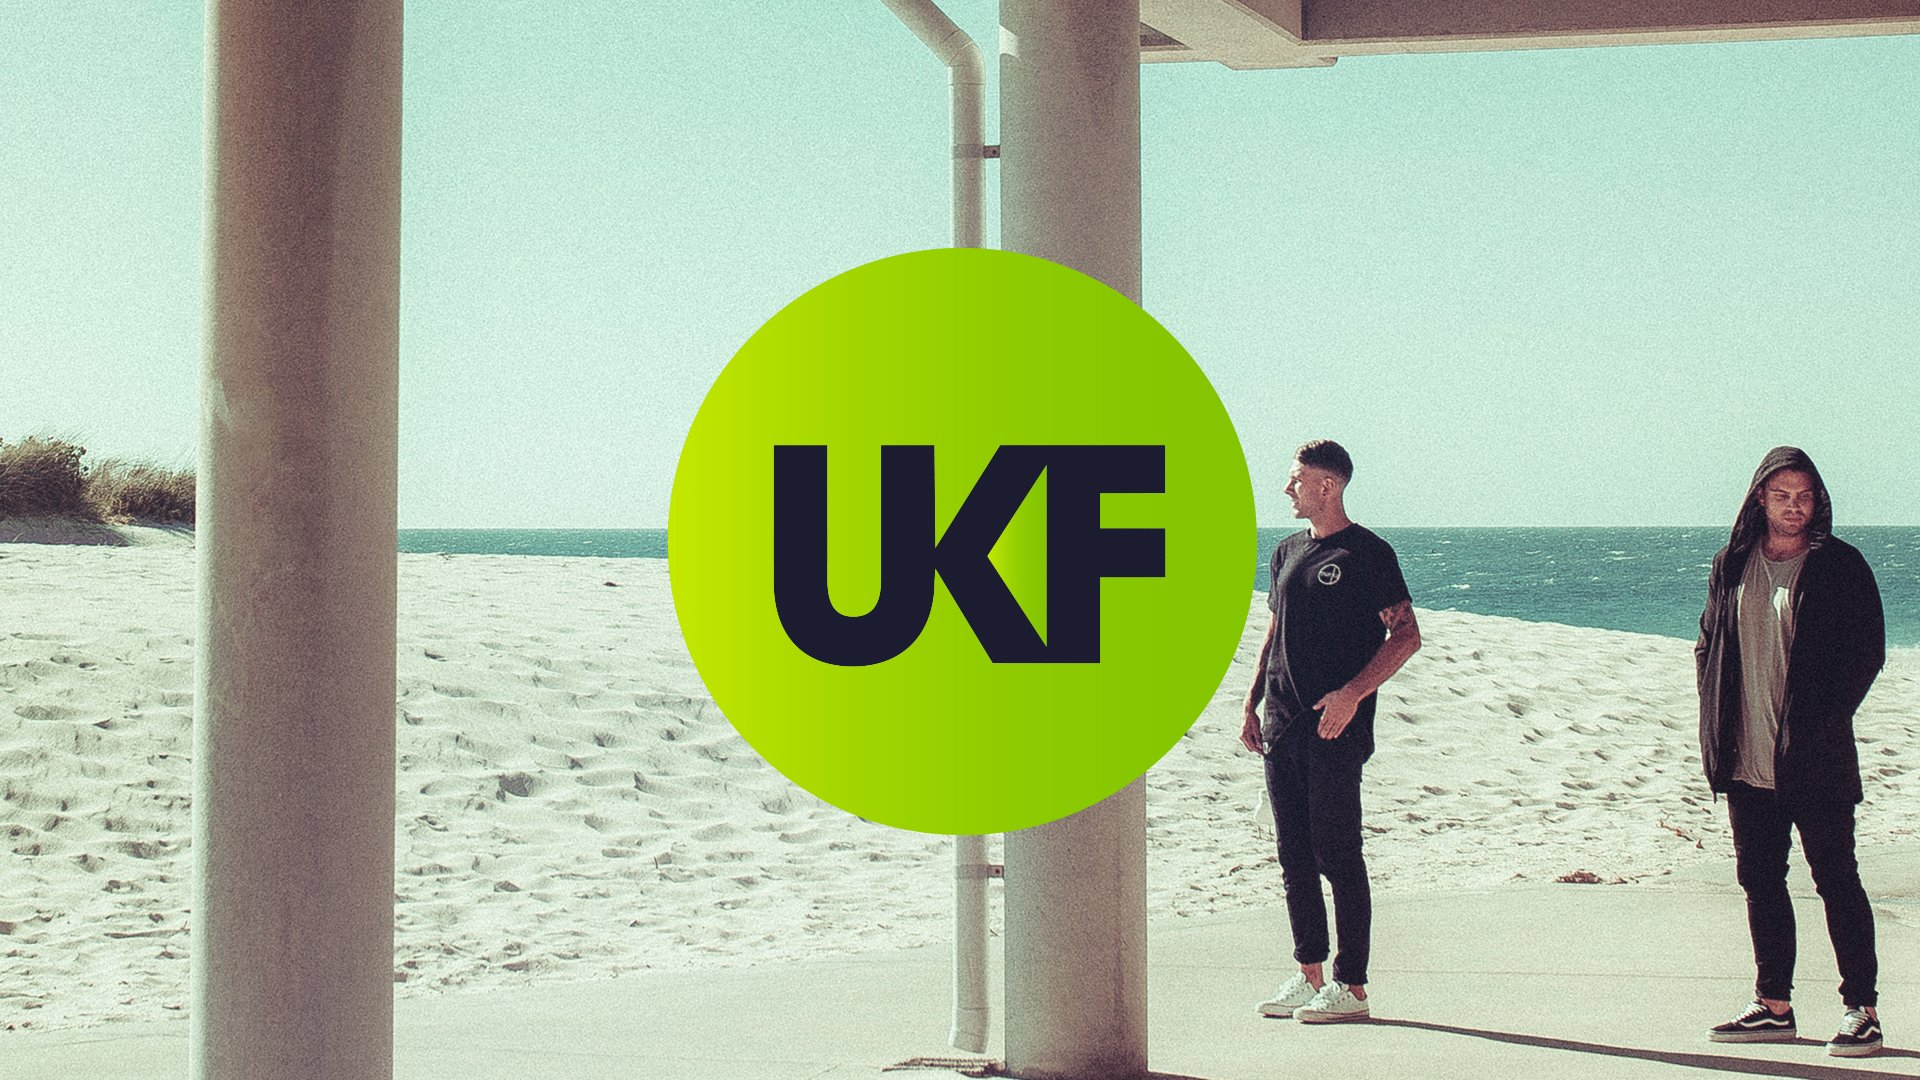 rt-ukf-flowidus-give-horizons-with-tikidub-a-fresh-dancefloor-makeover-%f0%9f%95%balisten-now-https-t-co-gl6obx4daf-https-t-co-1eyeusz